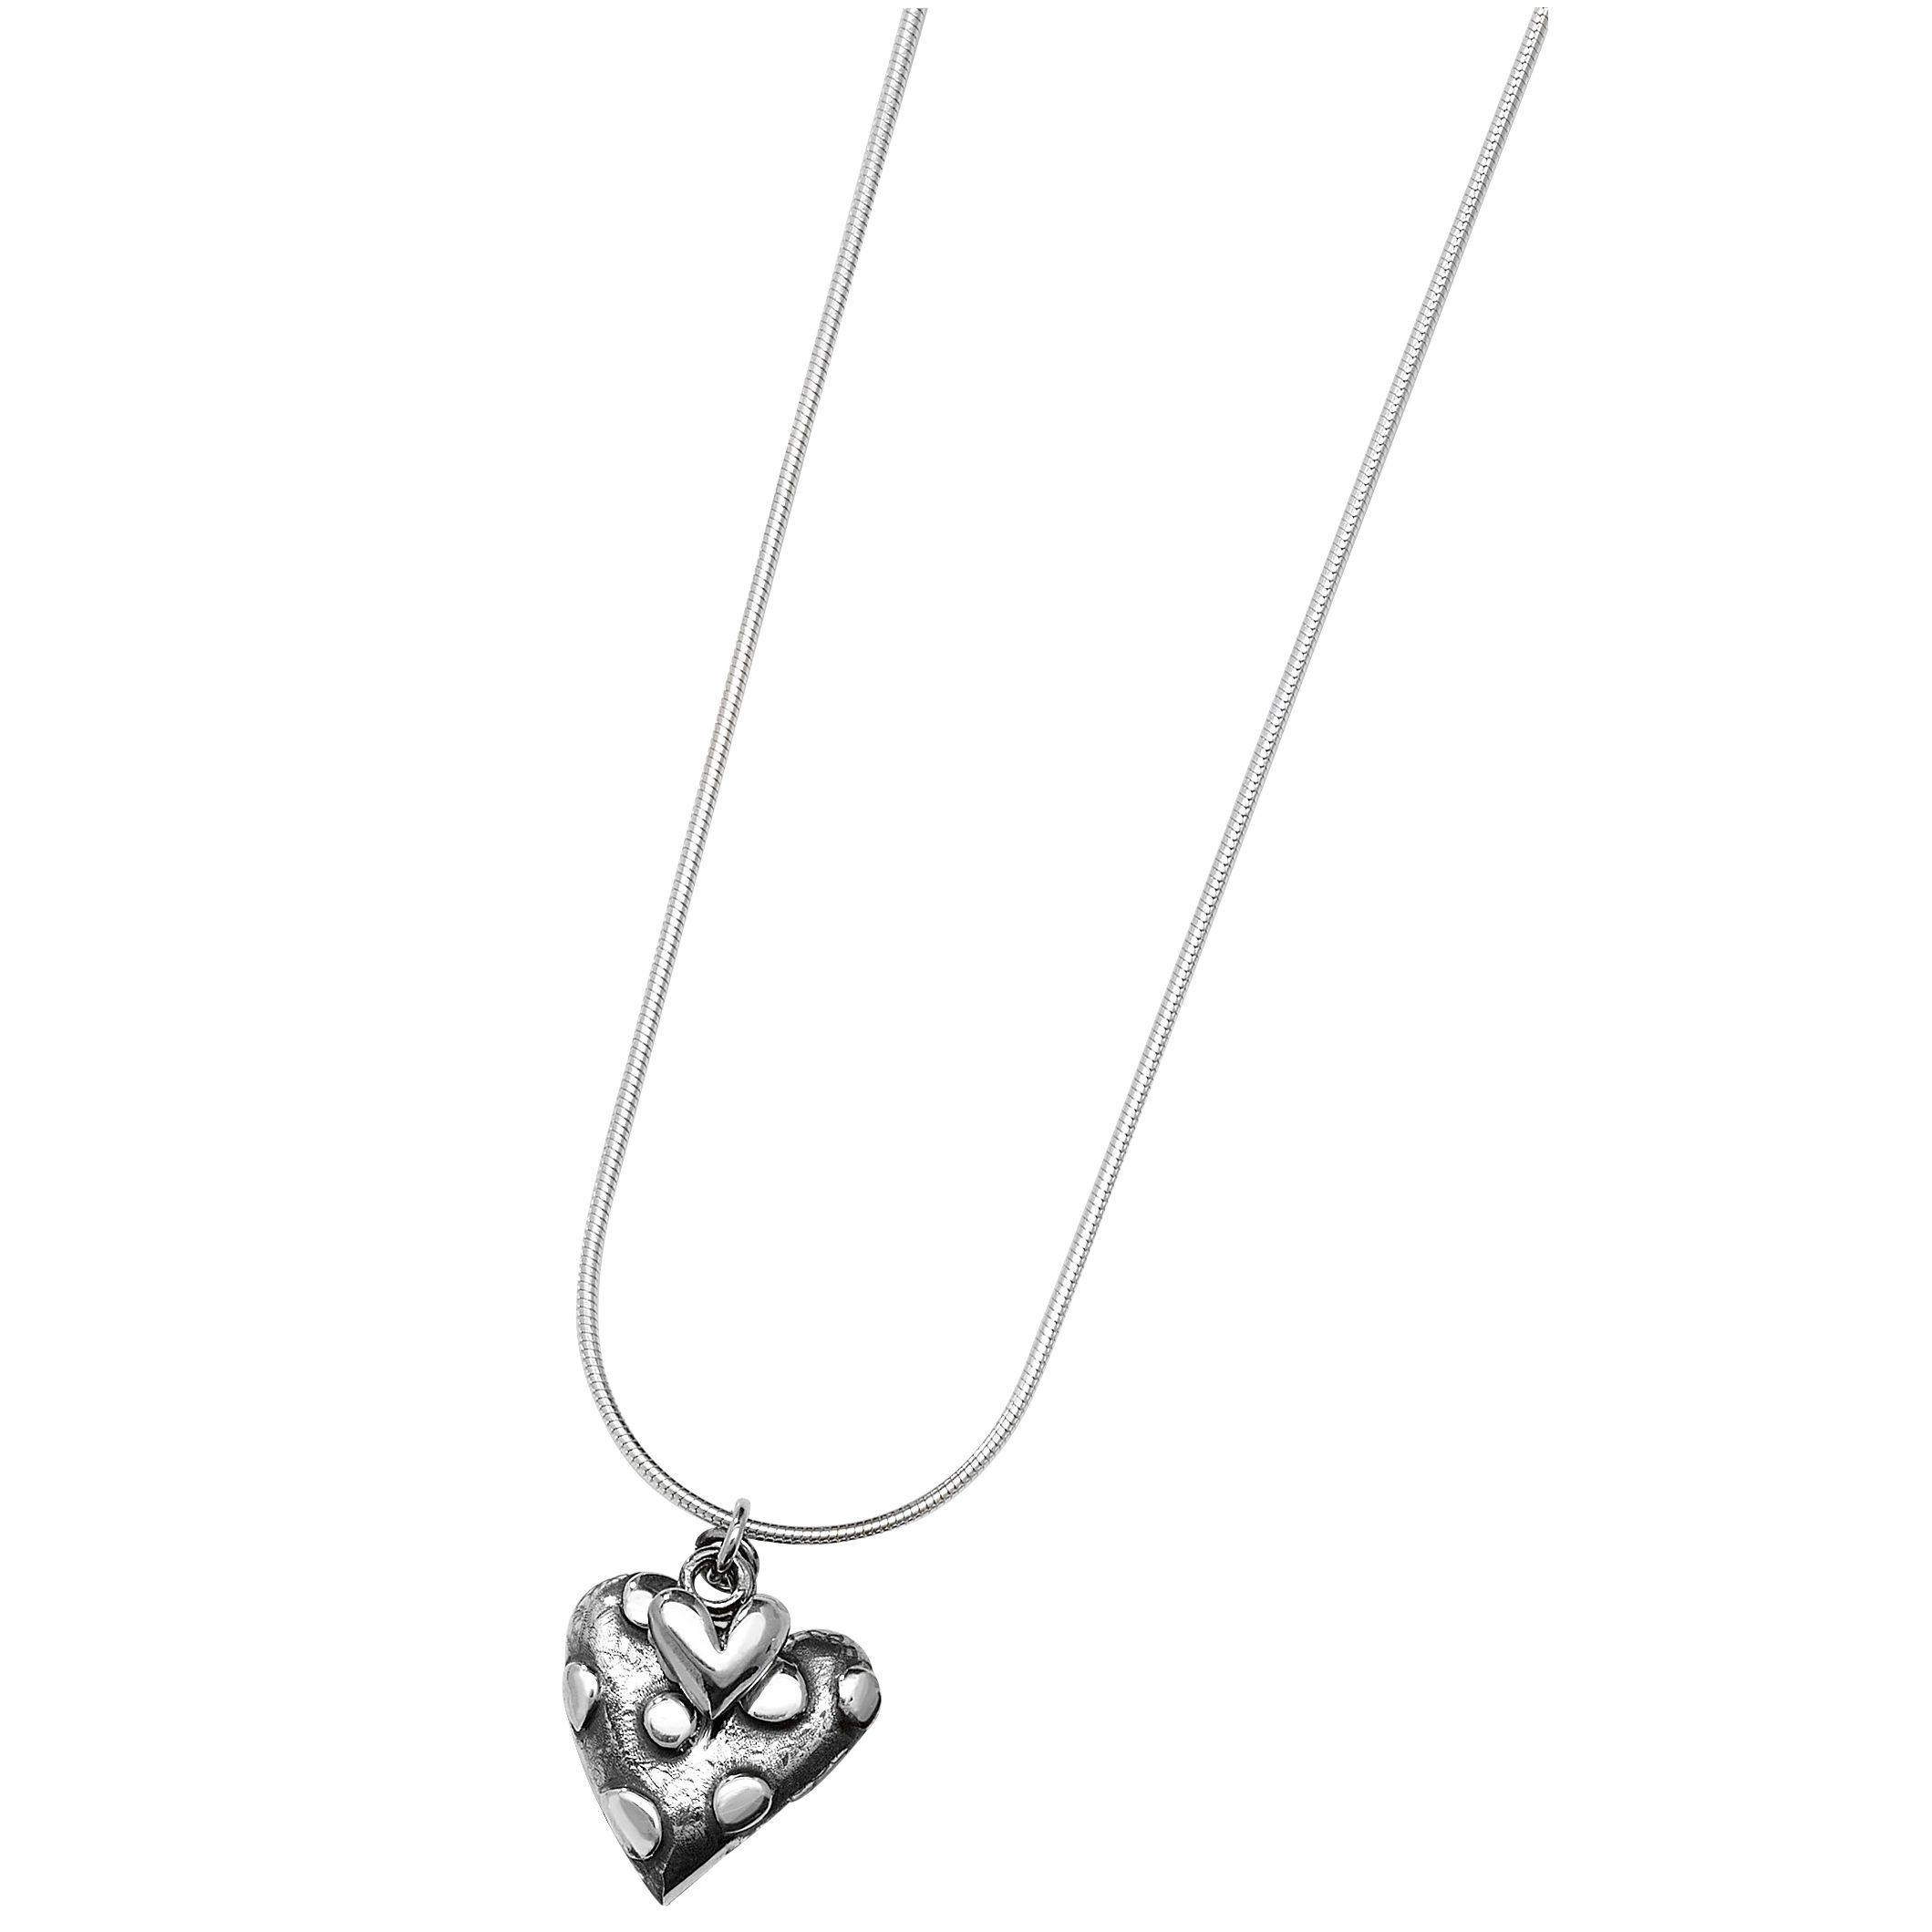 Linda Macdonald Oxidised Silver Dotty Heart Pendant Necklace